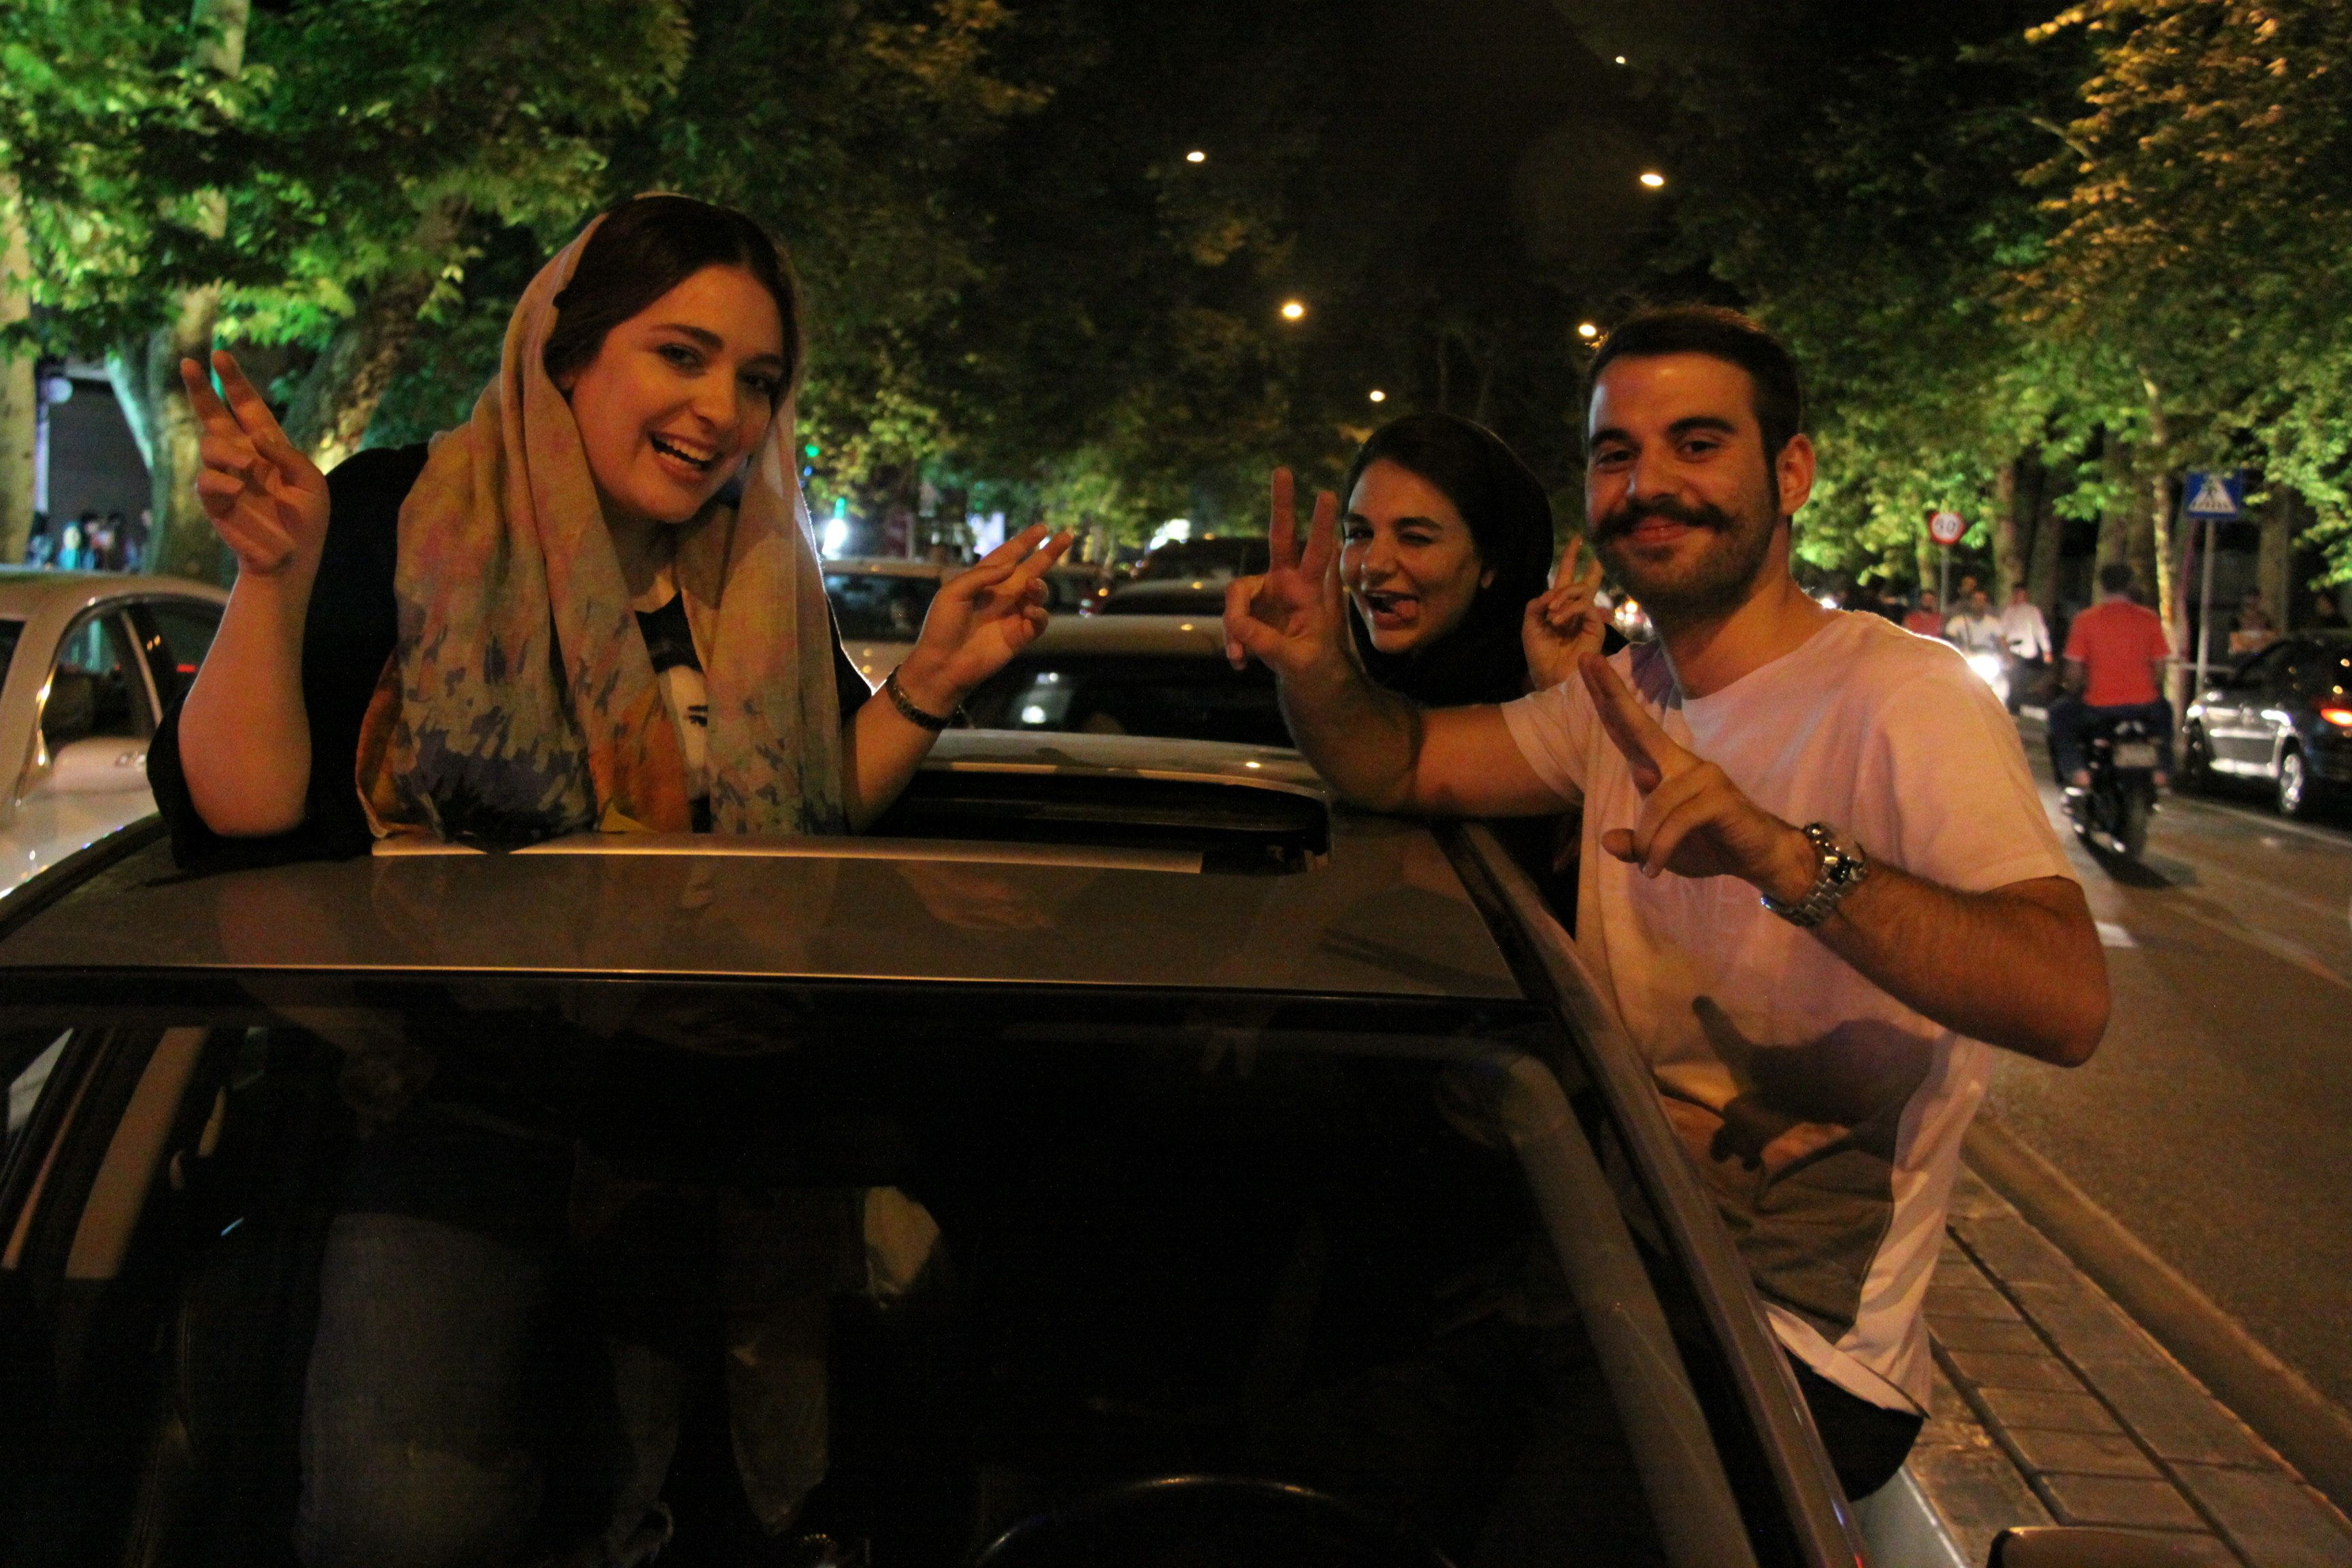 TEHRAN, IRAN - JULY 14: Iranian people celebrate the nuclear agreement between Iran and the P5+1 world powers on July 14, 2015 in Tehran, Iran. Iran and the world powers group, P5+1, have reached a milestone agreement over the nuclear issue in the Austrian capital of Vienna on Tuesday. (Photo by Rouzbeh Fouladi/NurPhoto) (Photo by NurPhoto/NurPhoto via Getty Images)